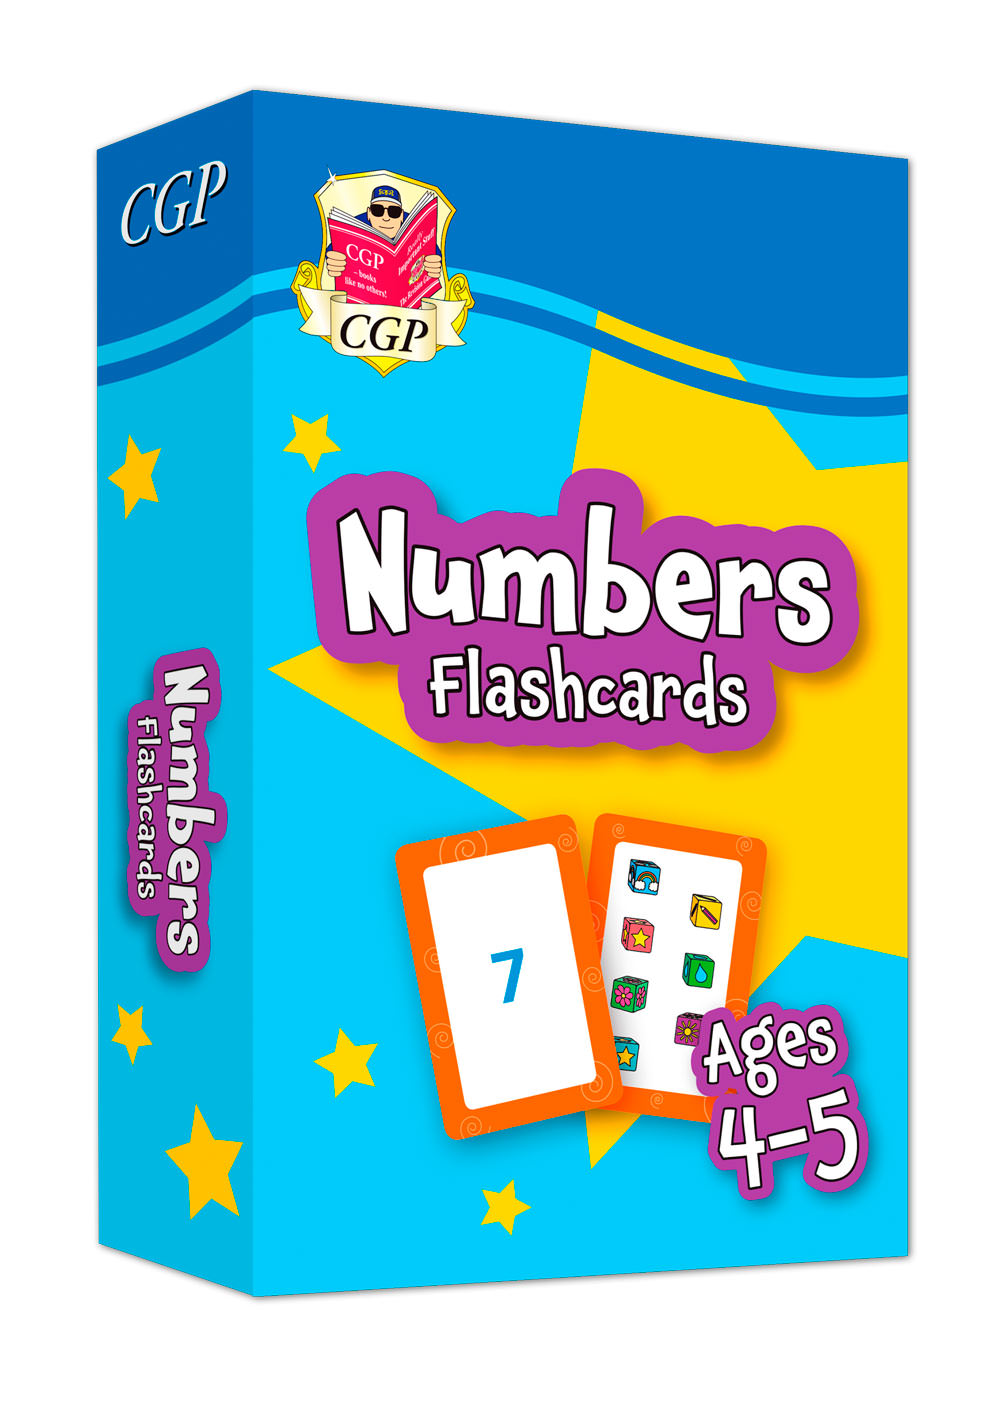 MPFNRF01 - New Numbers Flashcards for Ages 4-5: perfect for back-to-school practice